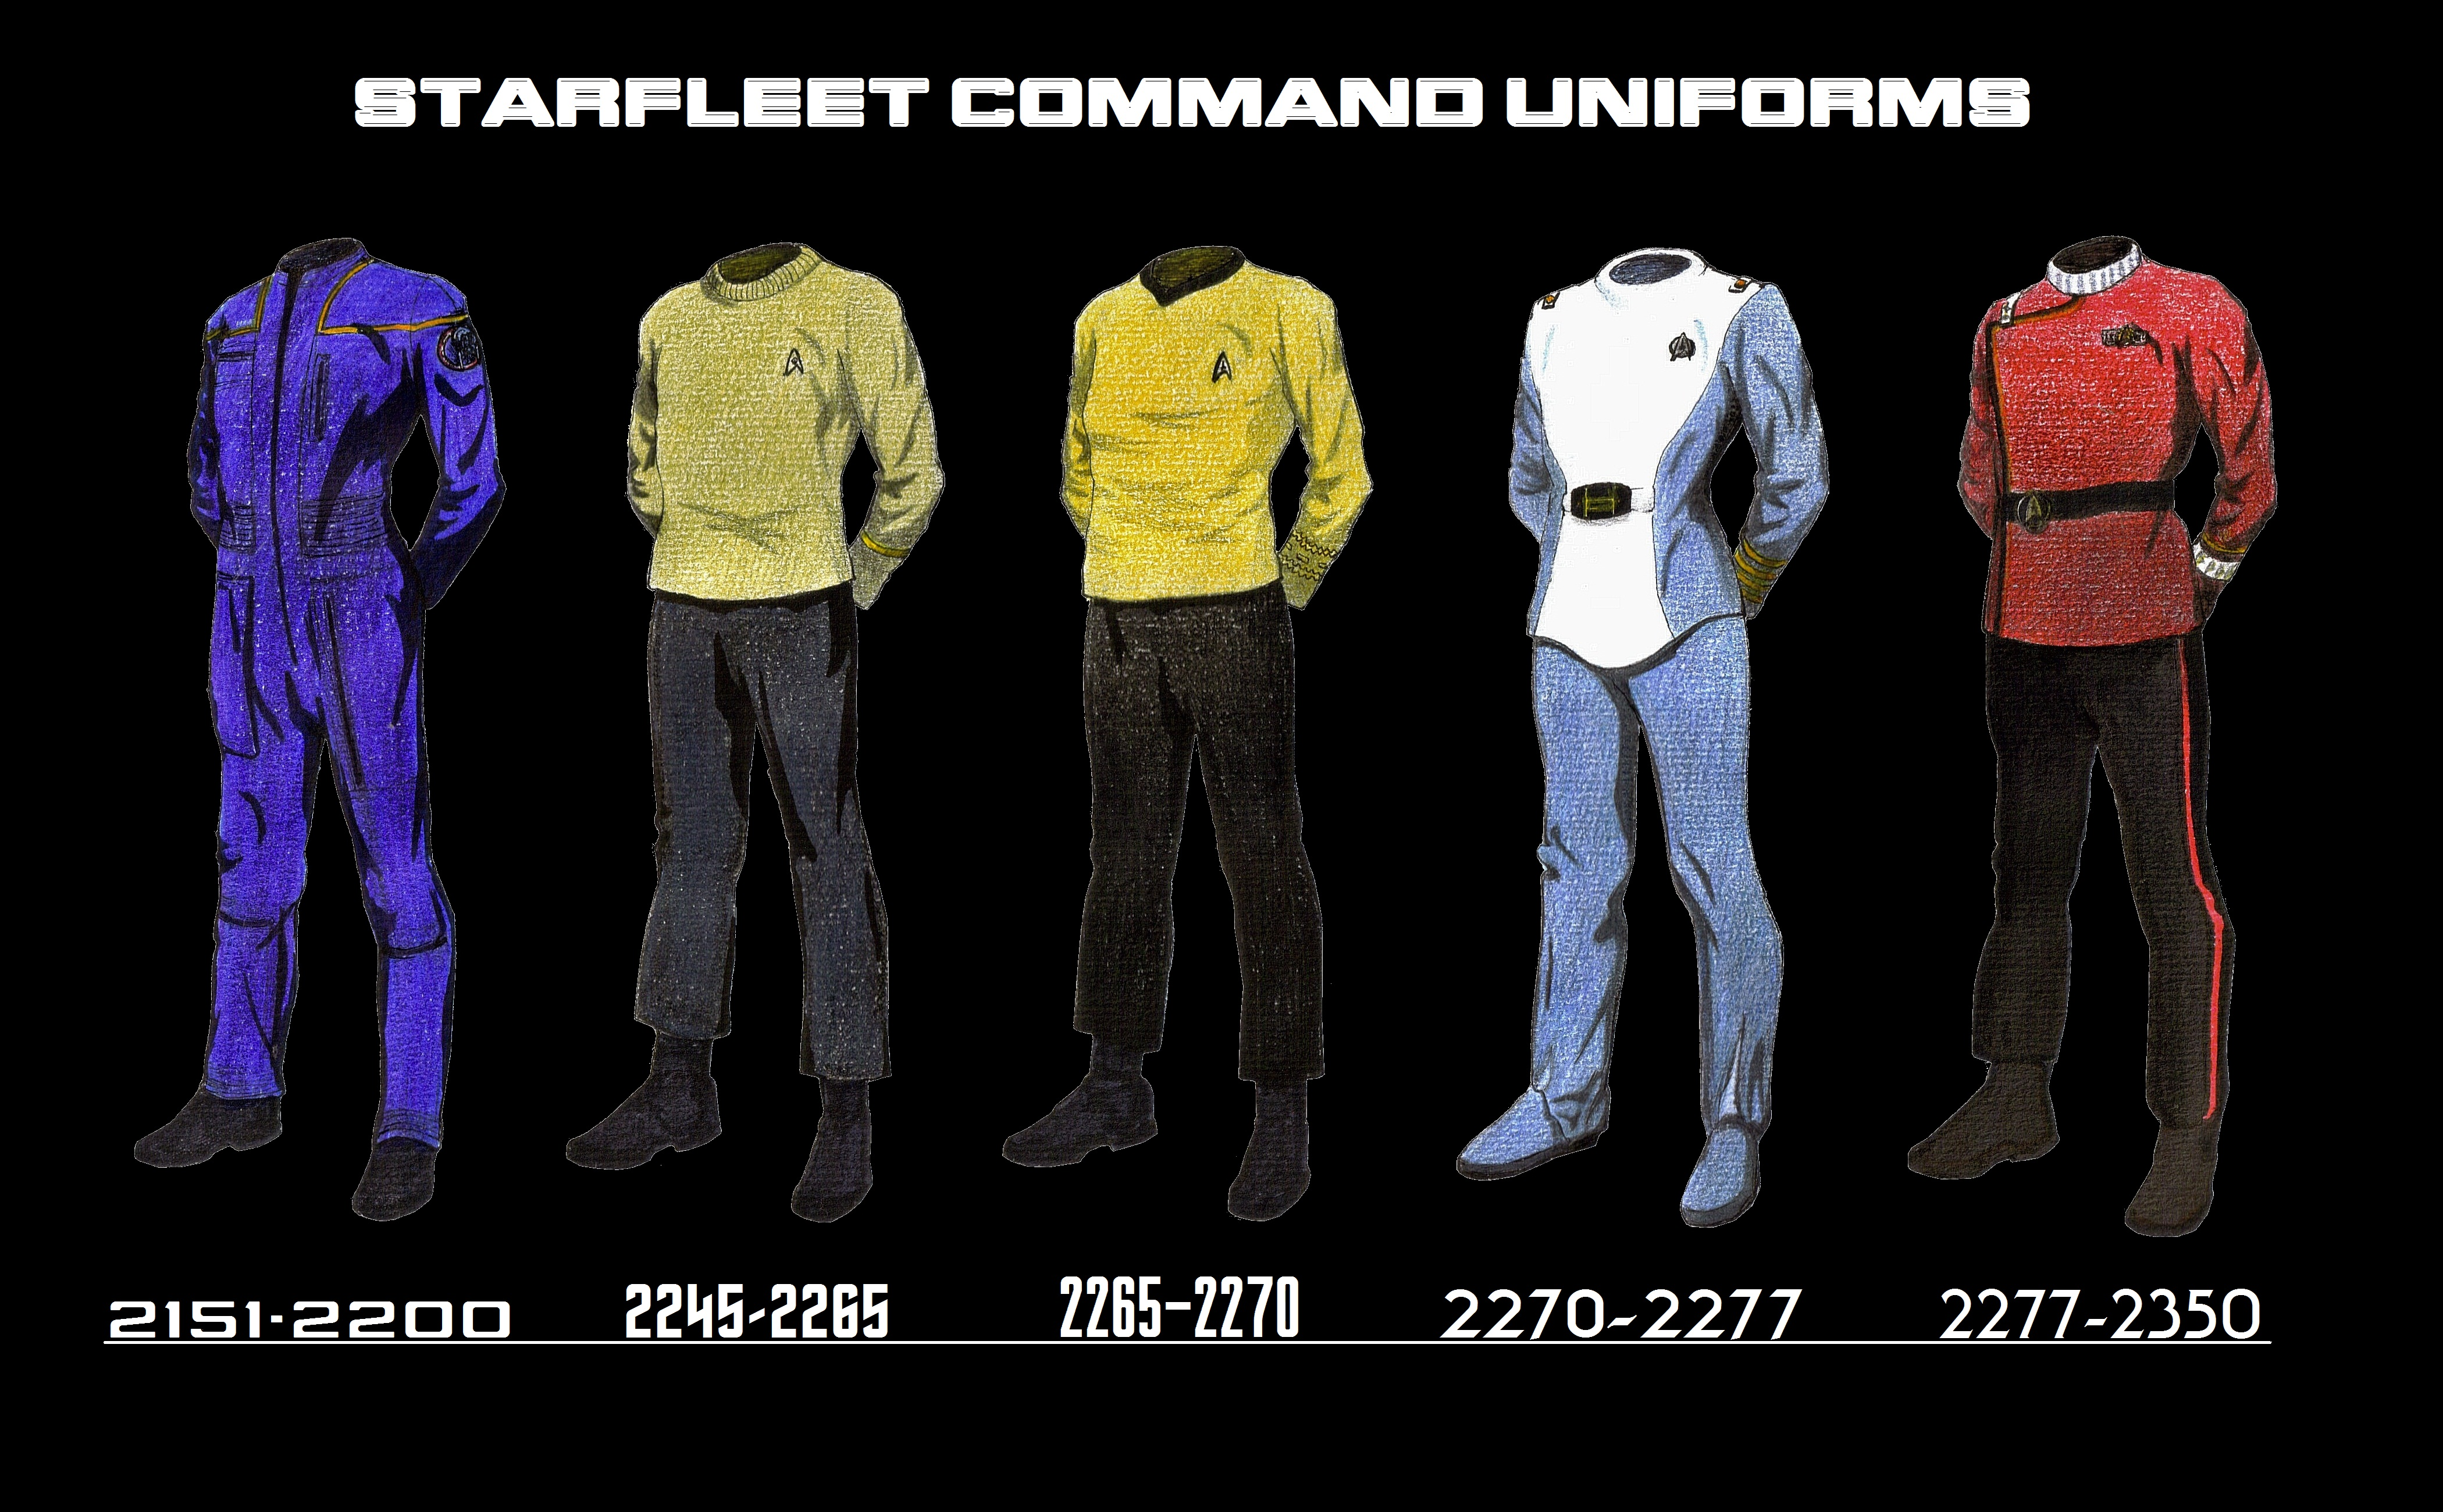 Pin Starfleet Uniforms on Pinterest